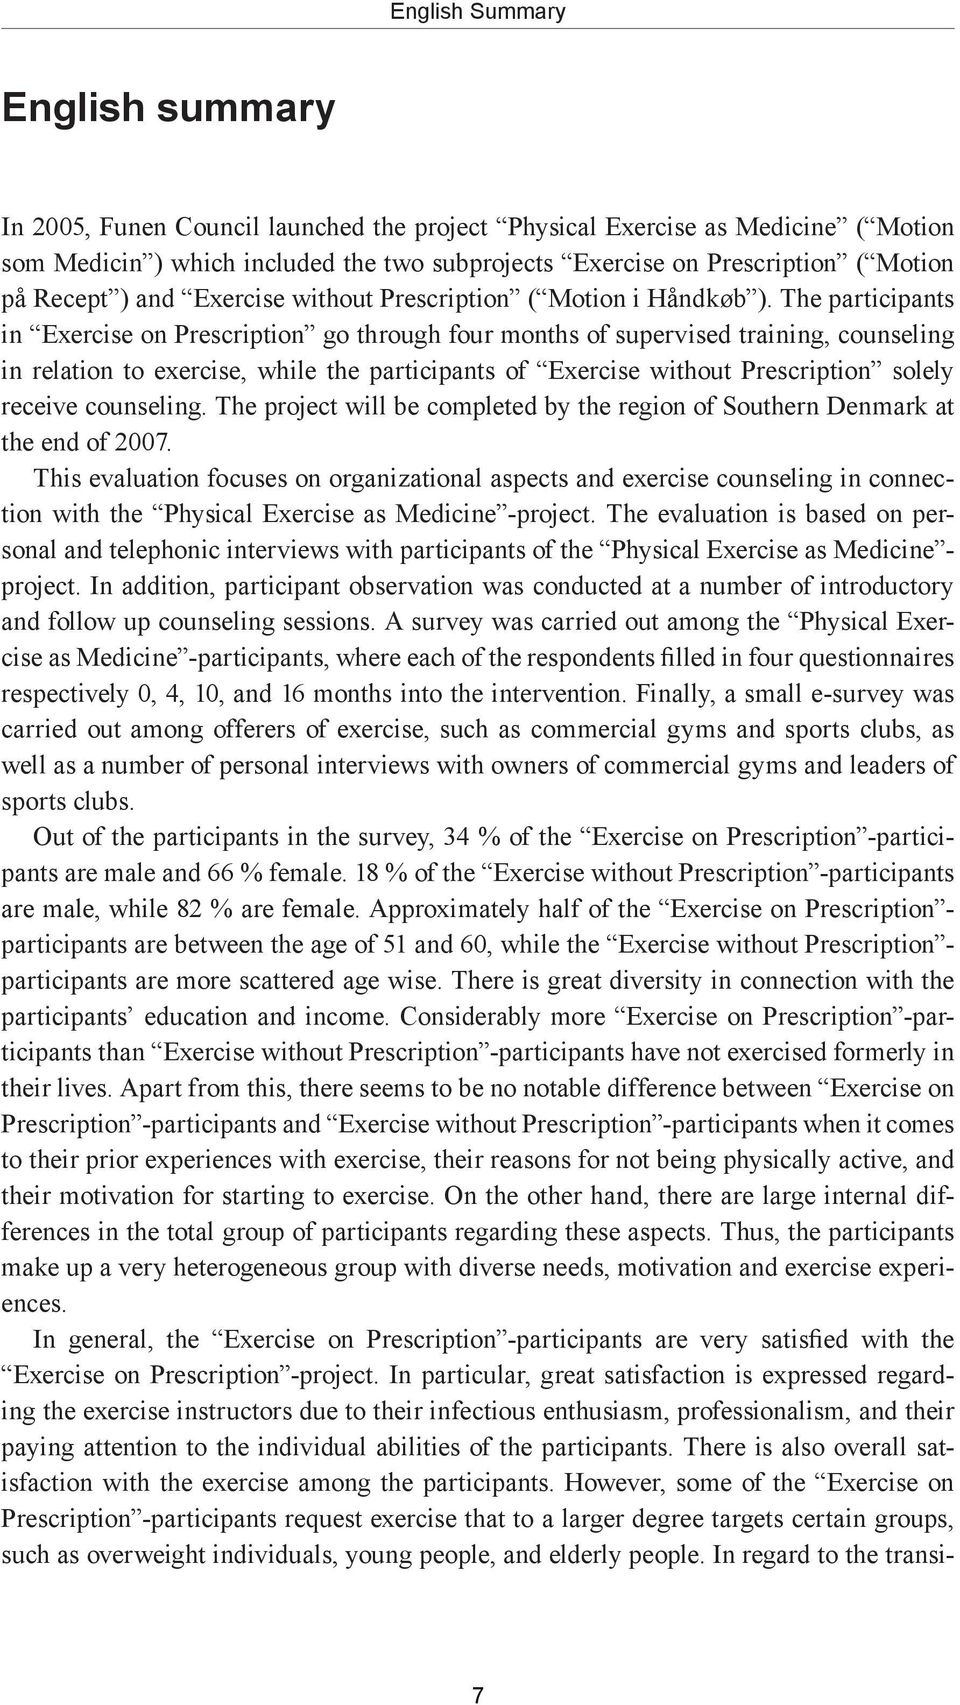 The participants in Exercise on Prescription go through four months of supervised training, counseling in relation to exercise, while the participants of Exercise without Prescription solely receive